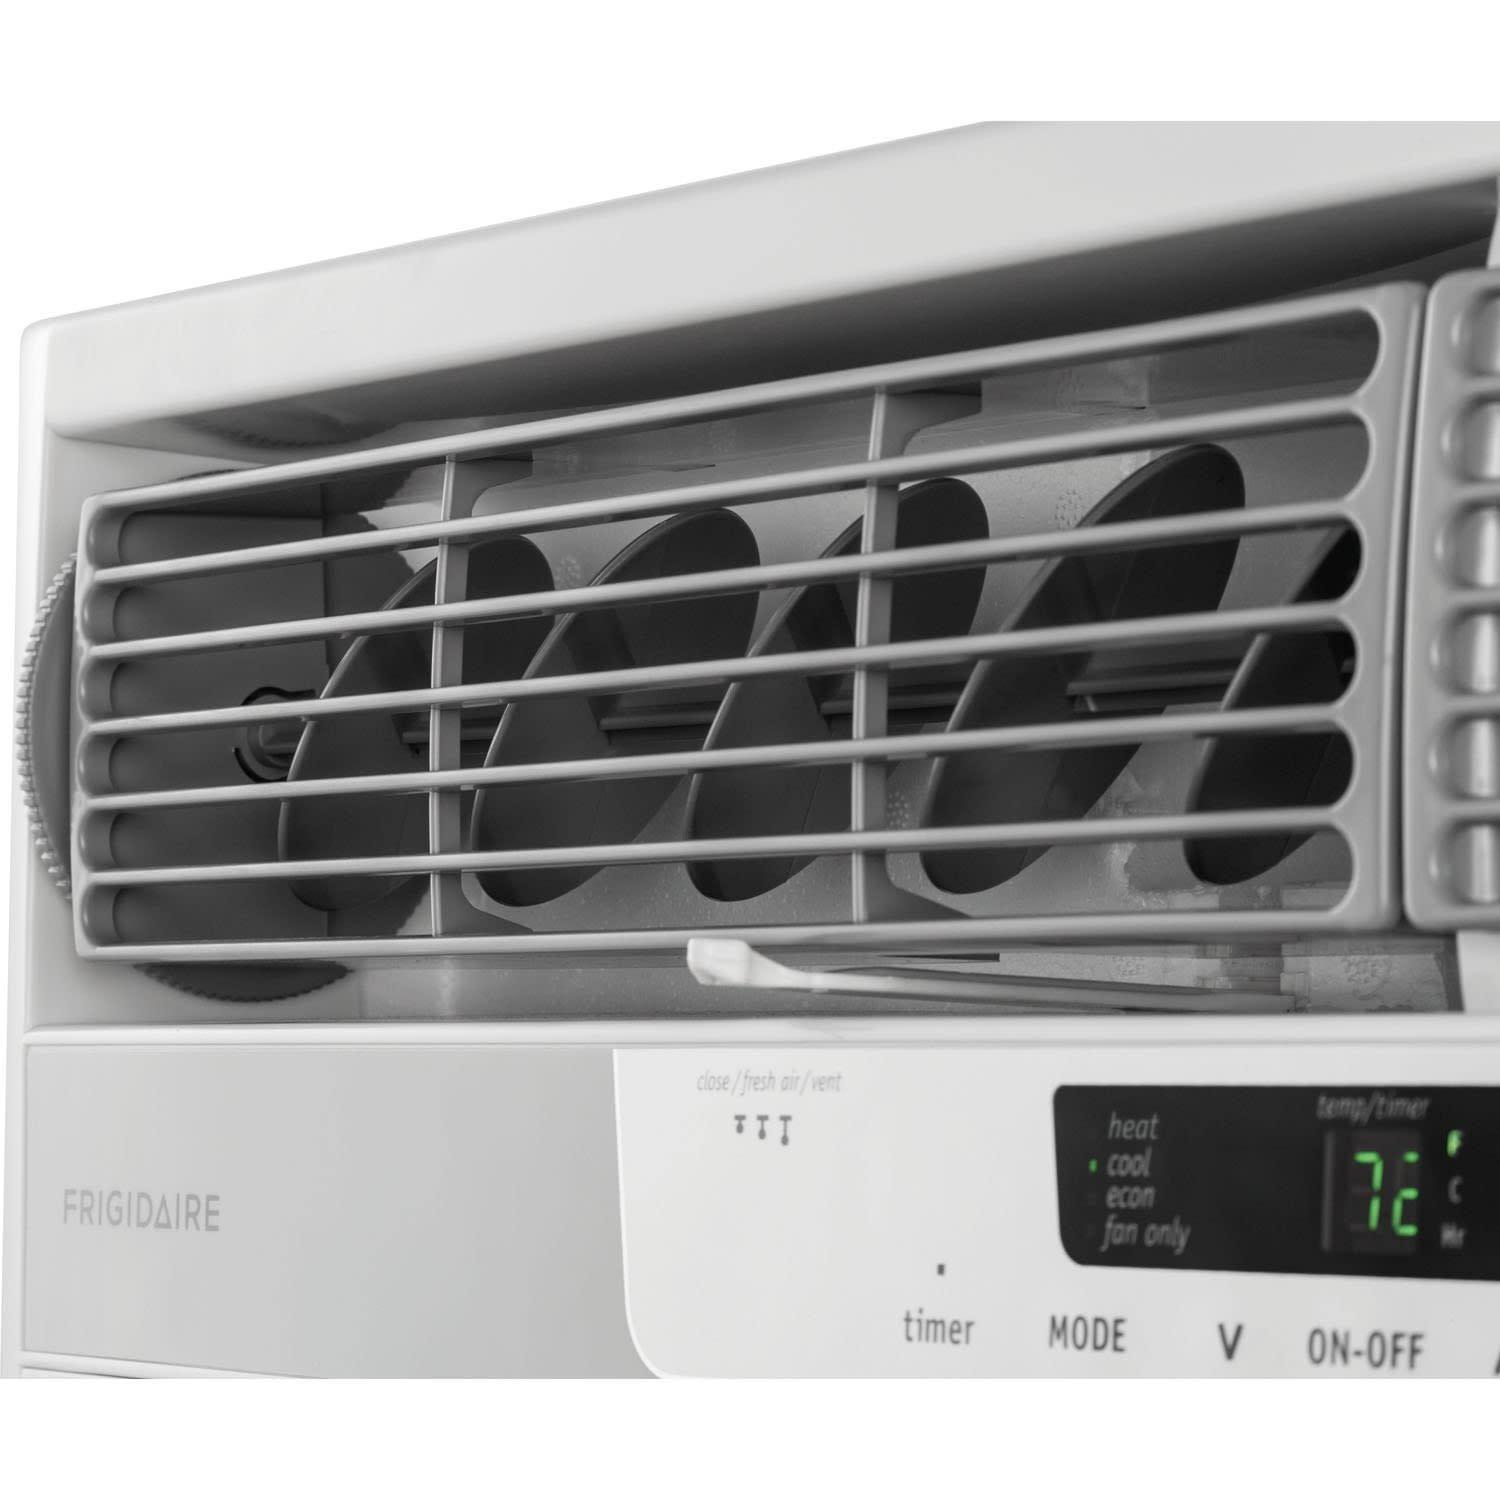 hight resolution of frigidaire ffrh2522r2 25 000 btu 230v heavy duty slide out chassis air conditioner with 16 000 btu supplemental heat capability walmart com